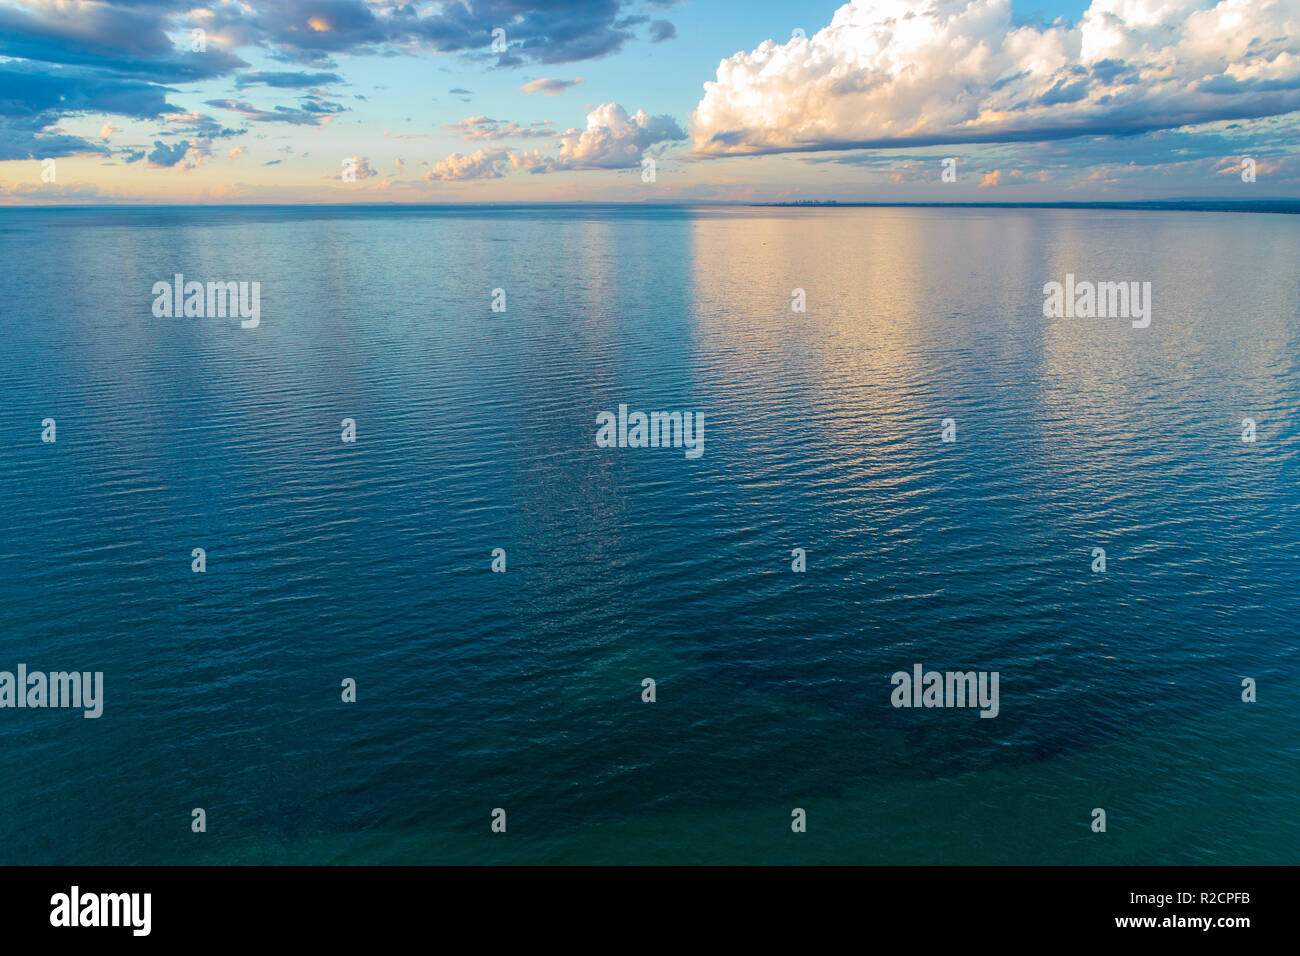 Minimalist aerial seascape - clouds over water - Stock Image